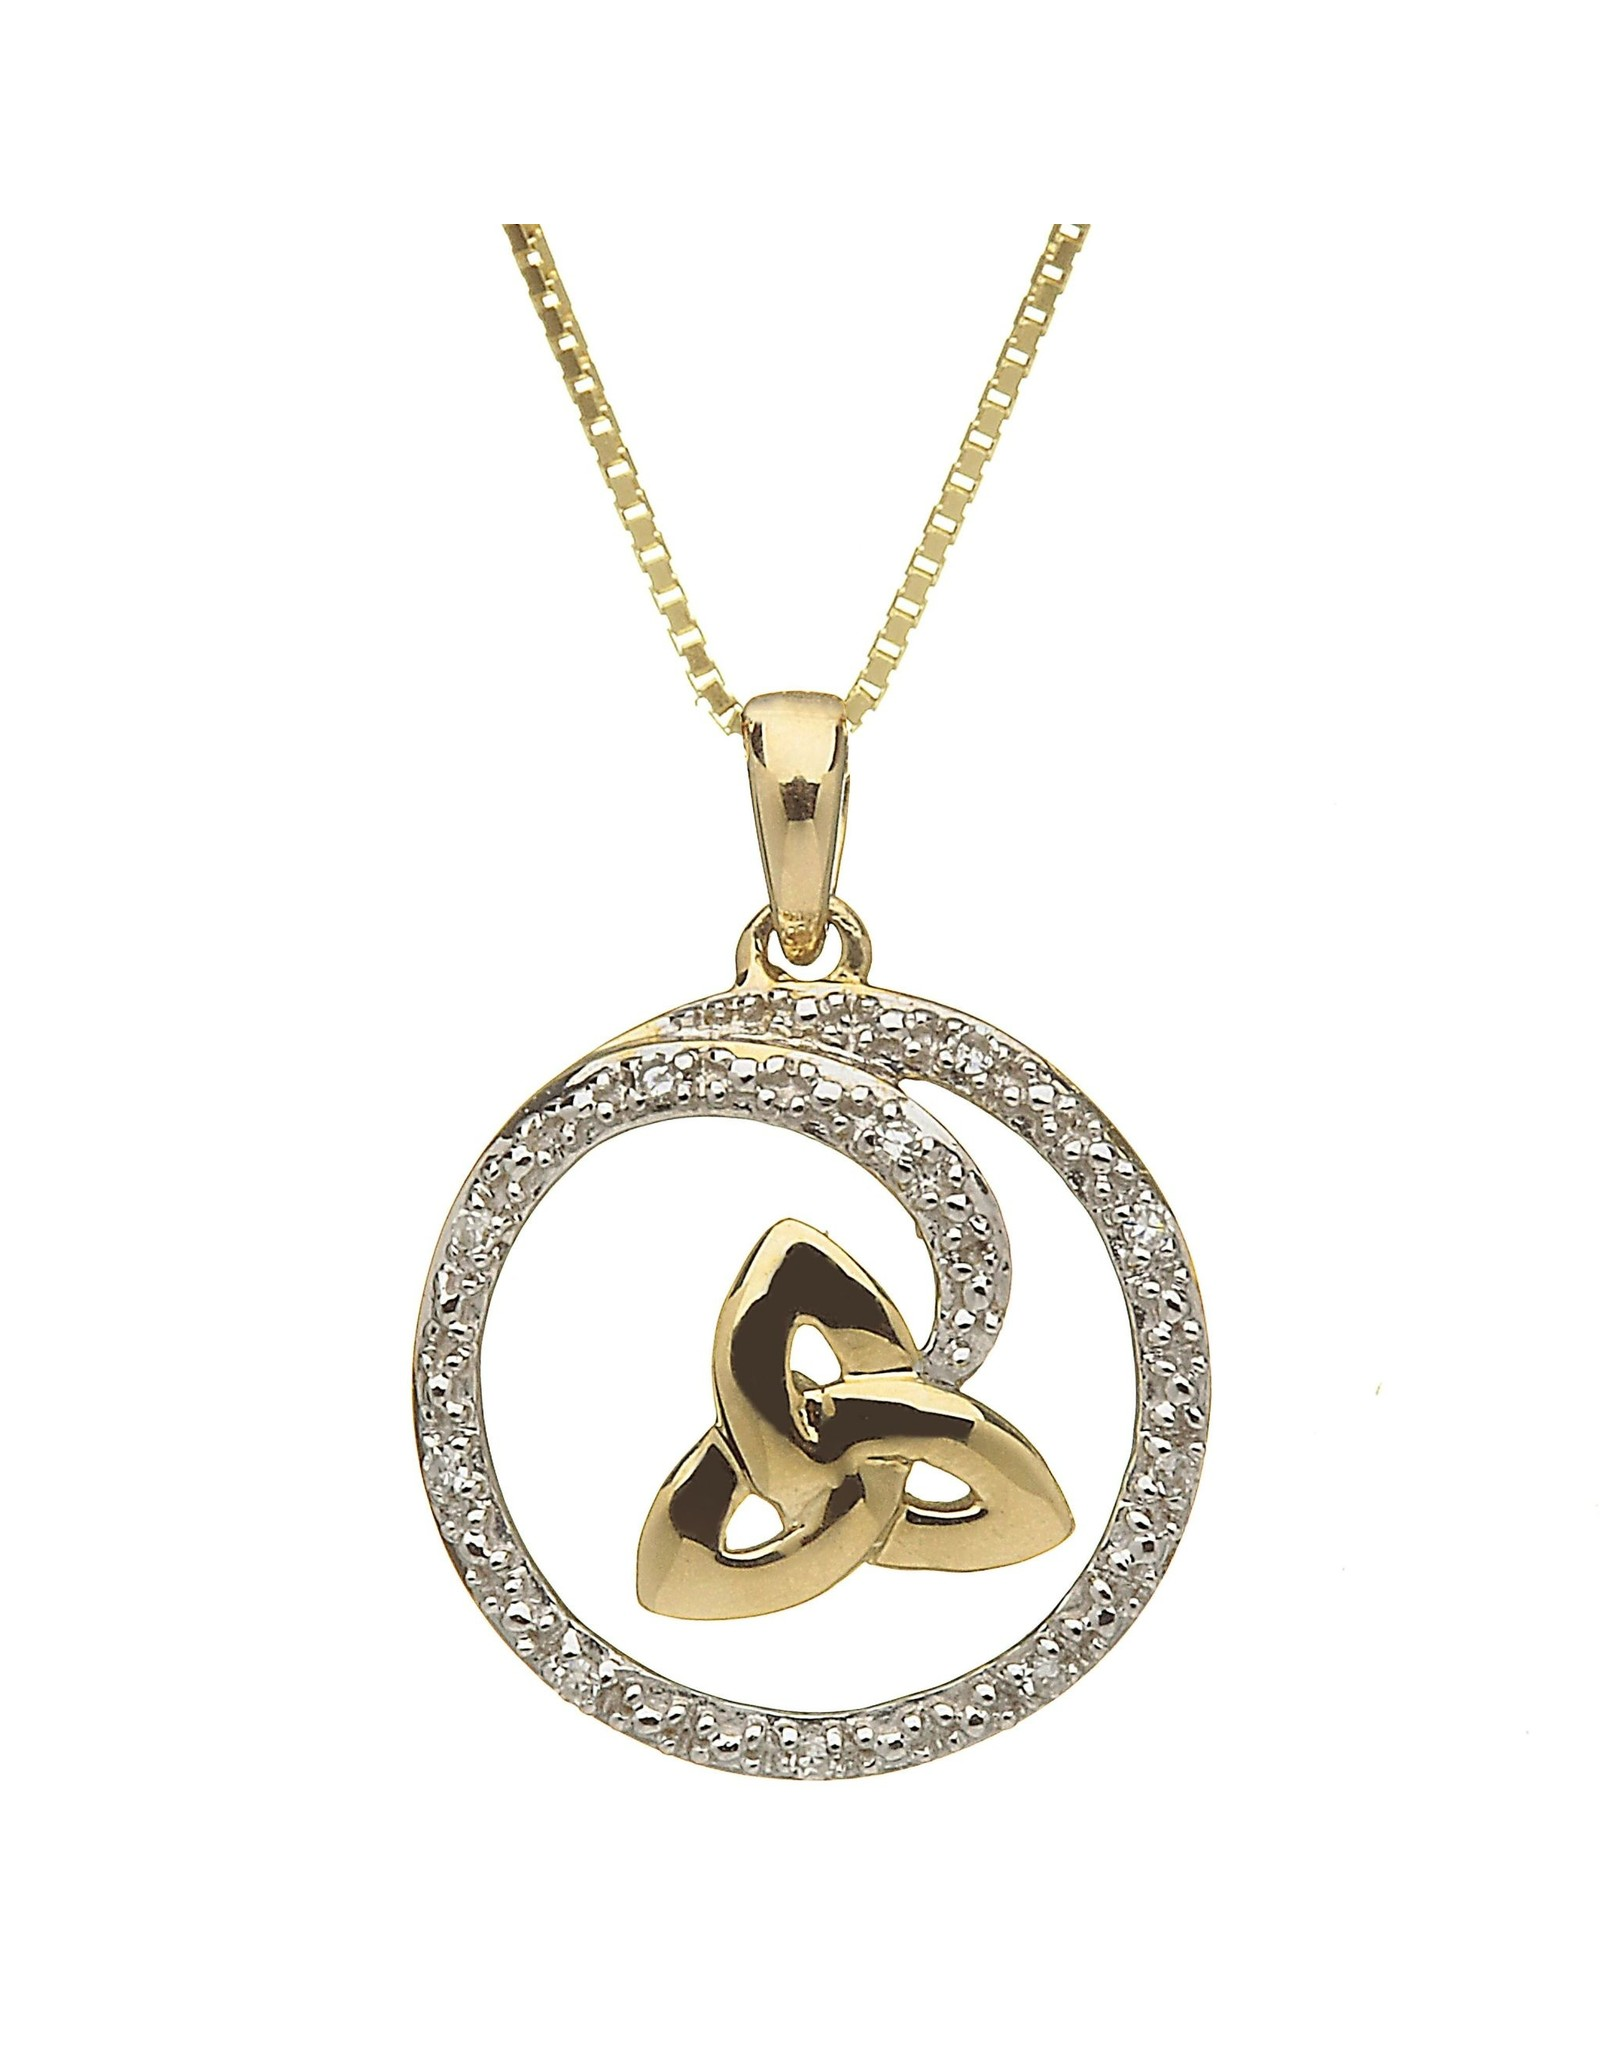 Shanore 10k Y Gold Trinity + Diamond Swirl Necklace